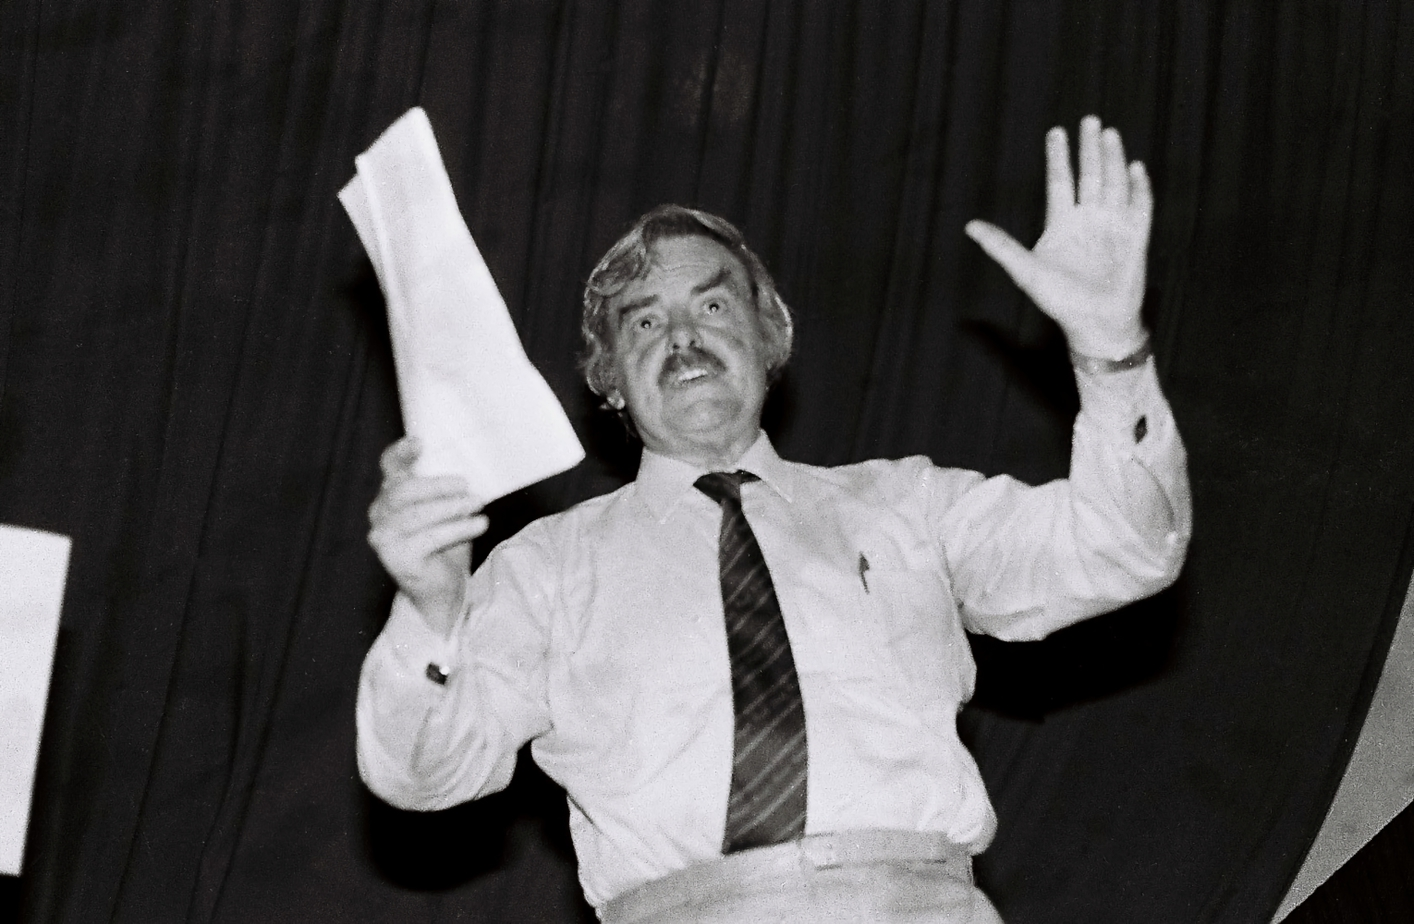 A man stands addressing an unseen crowd. He has his hands in the air – in one raised hand he holds a document. In his pocket is a pen and his tie is tucked into his pants